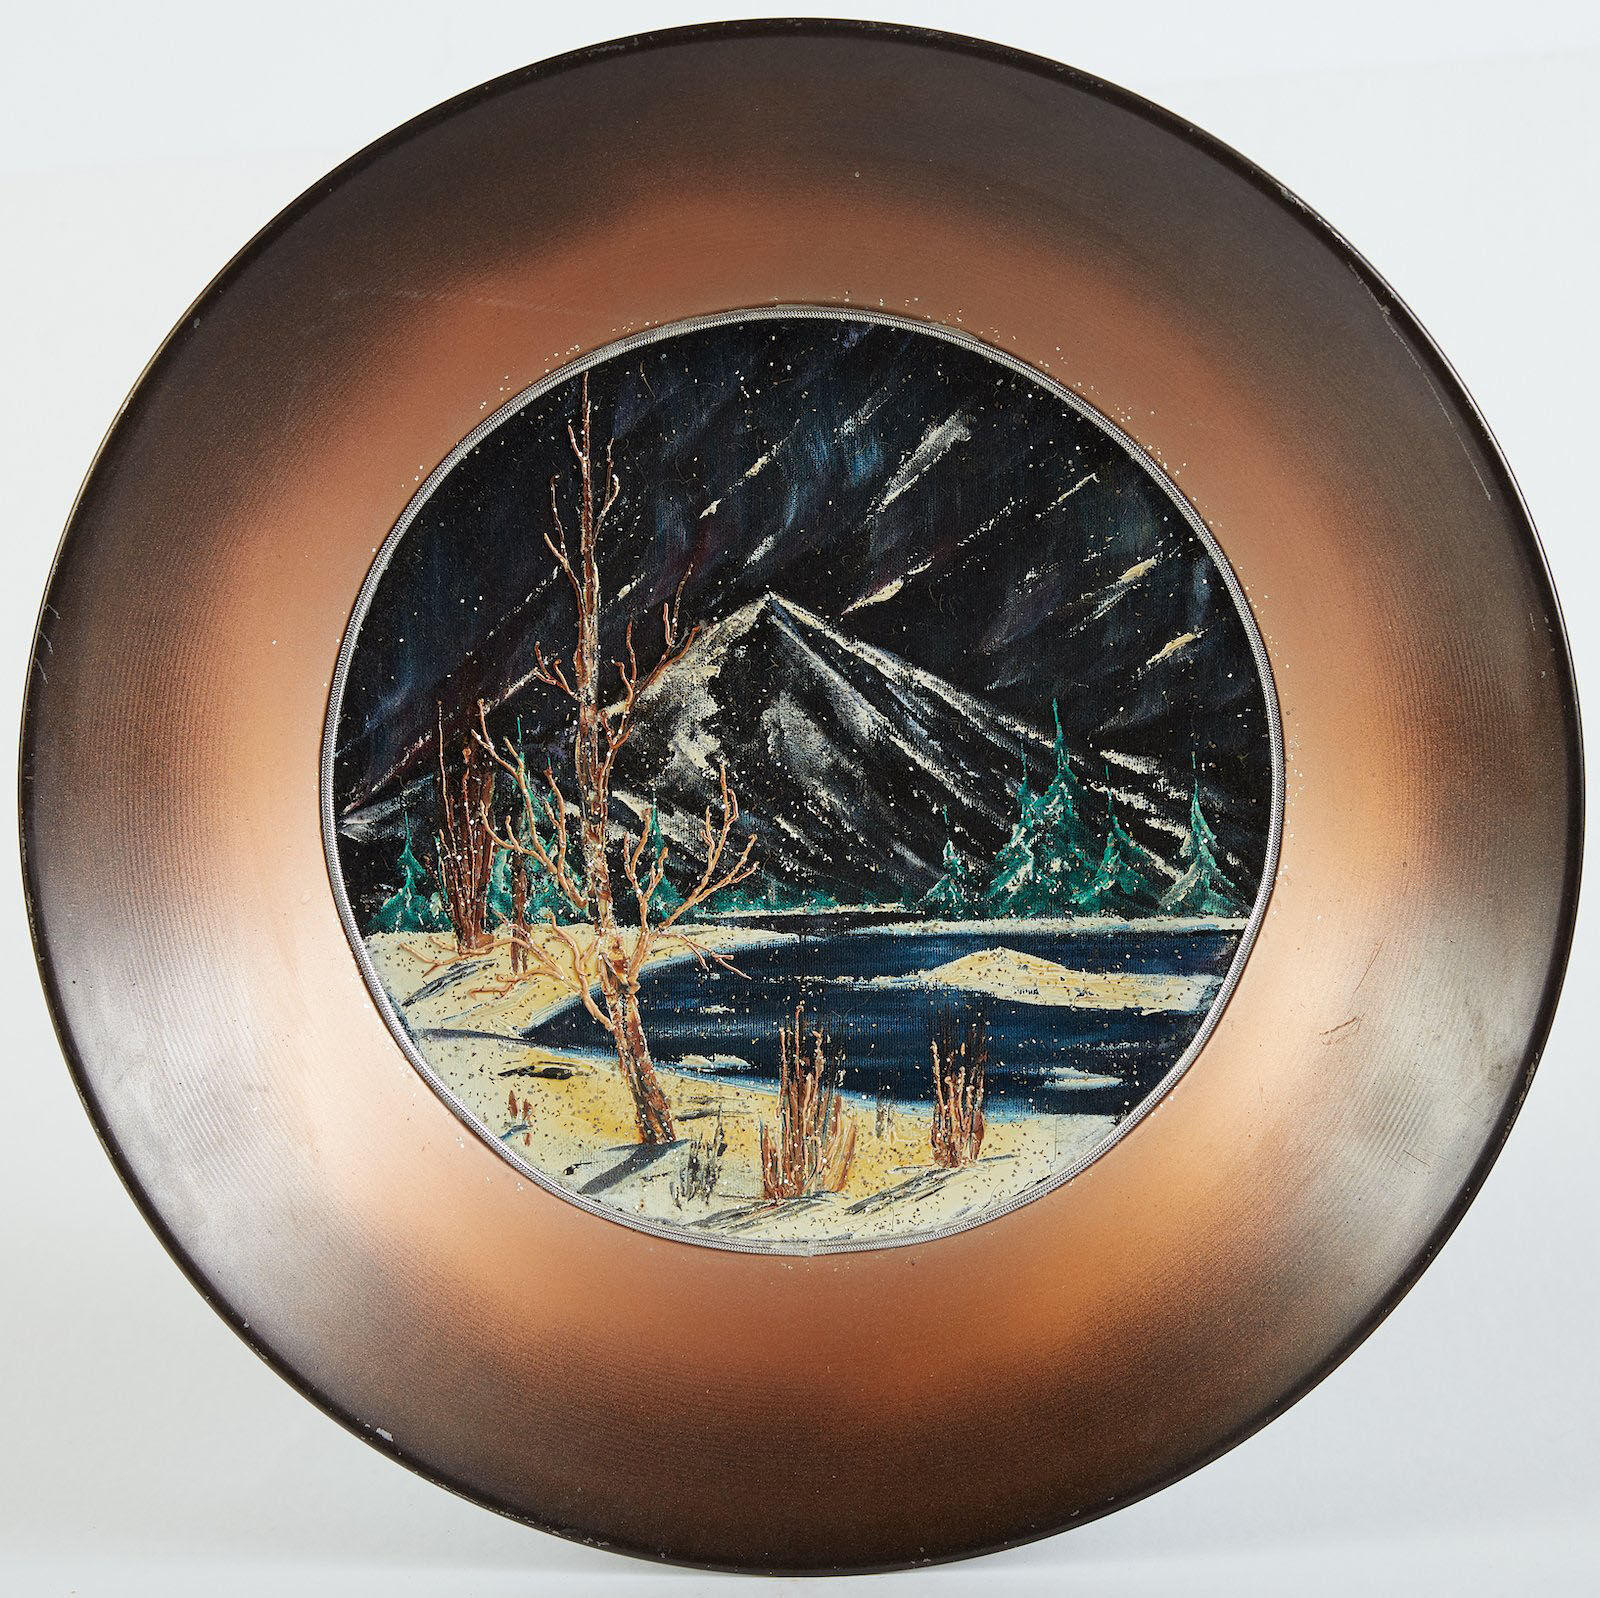 Bob Ross, Alaskan Mountains, Original Oil on Velvet inside Gold Pan. Image Used with Permission © Modern Artifact.